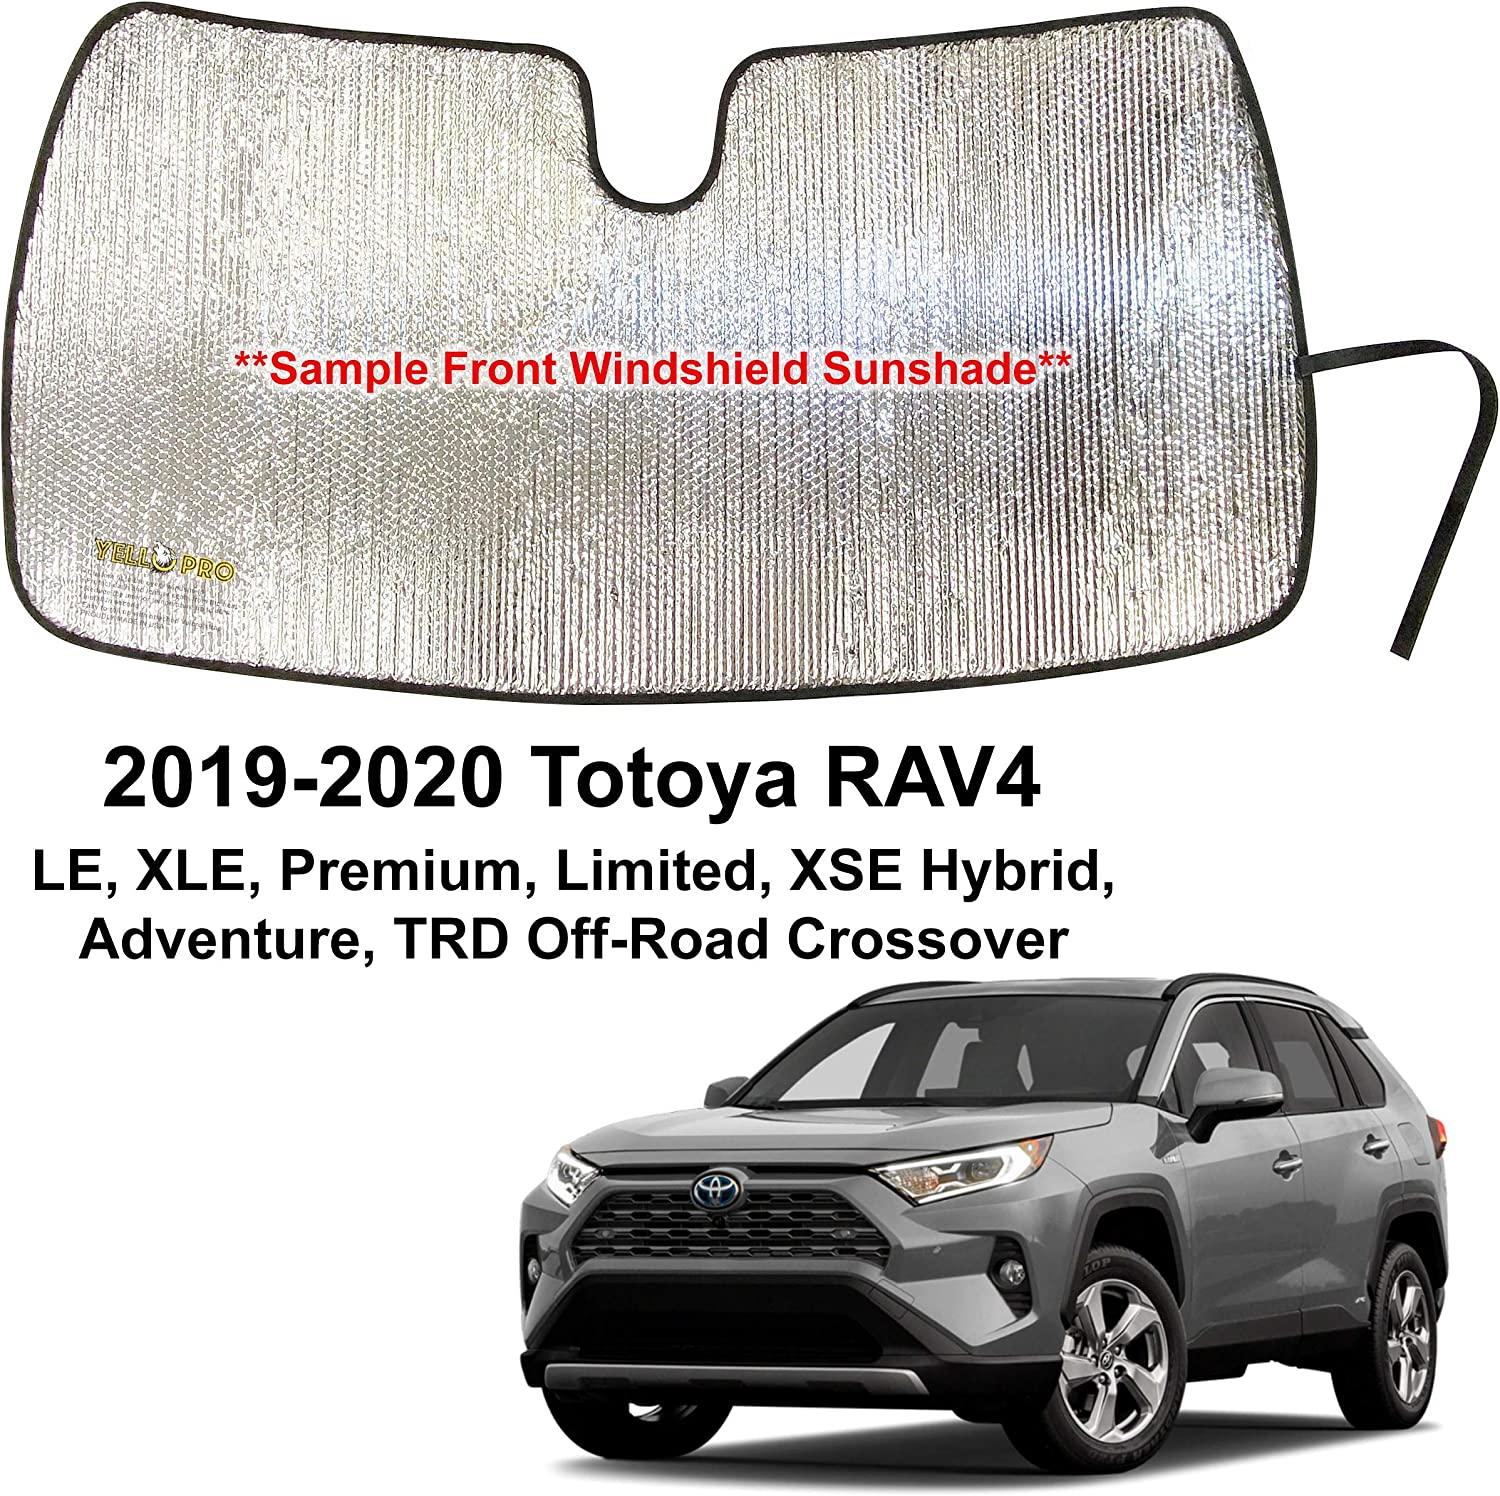 YelloPro Auto Custom Fit Car Front Windshield Reflective Sunshade Protector for 2019 2020 Toyota RAV4 LE XLE Premium Limited XSE Hybrid Adventure Crossover, Sun Shade Accessories, Made in USA